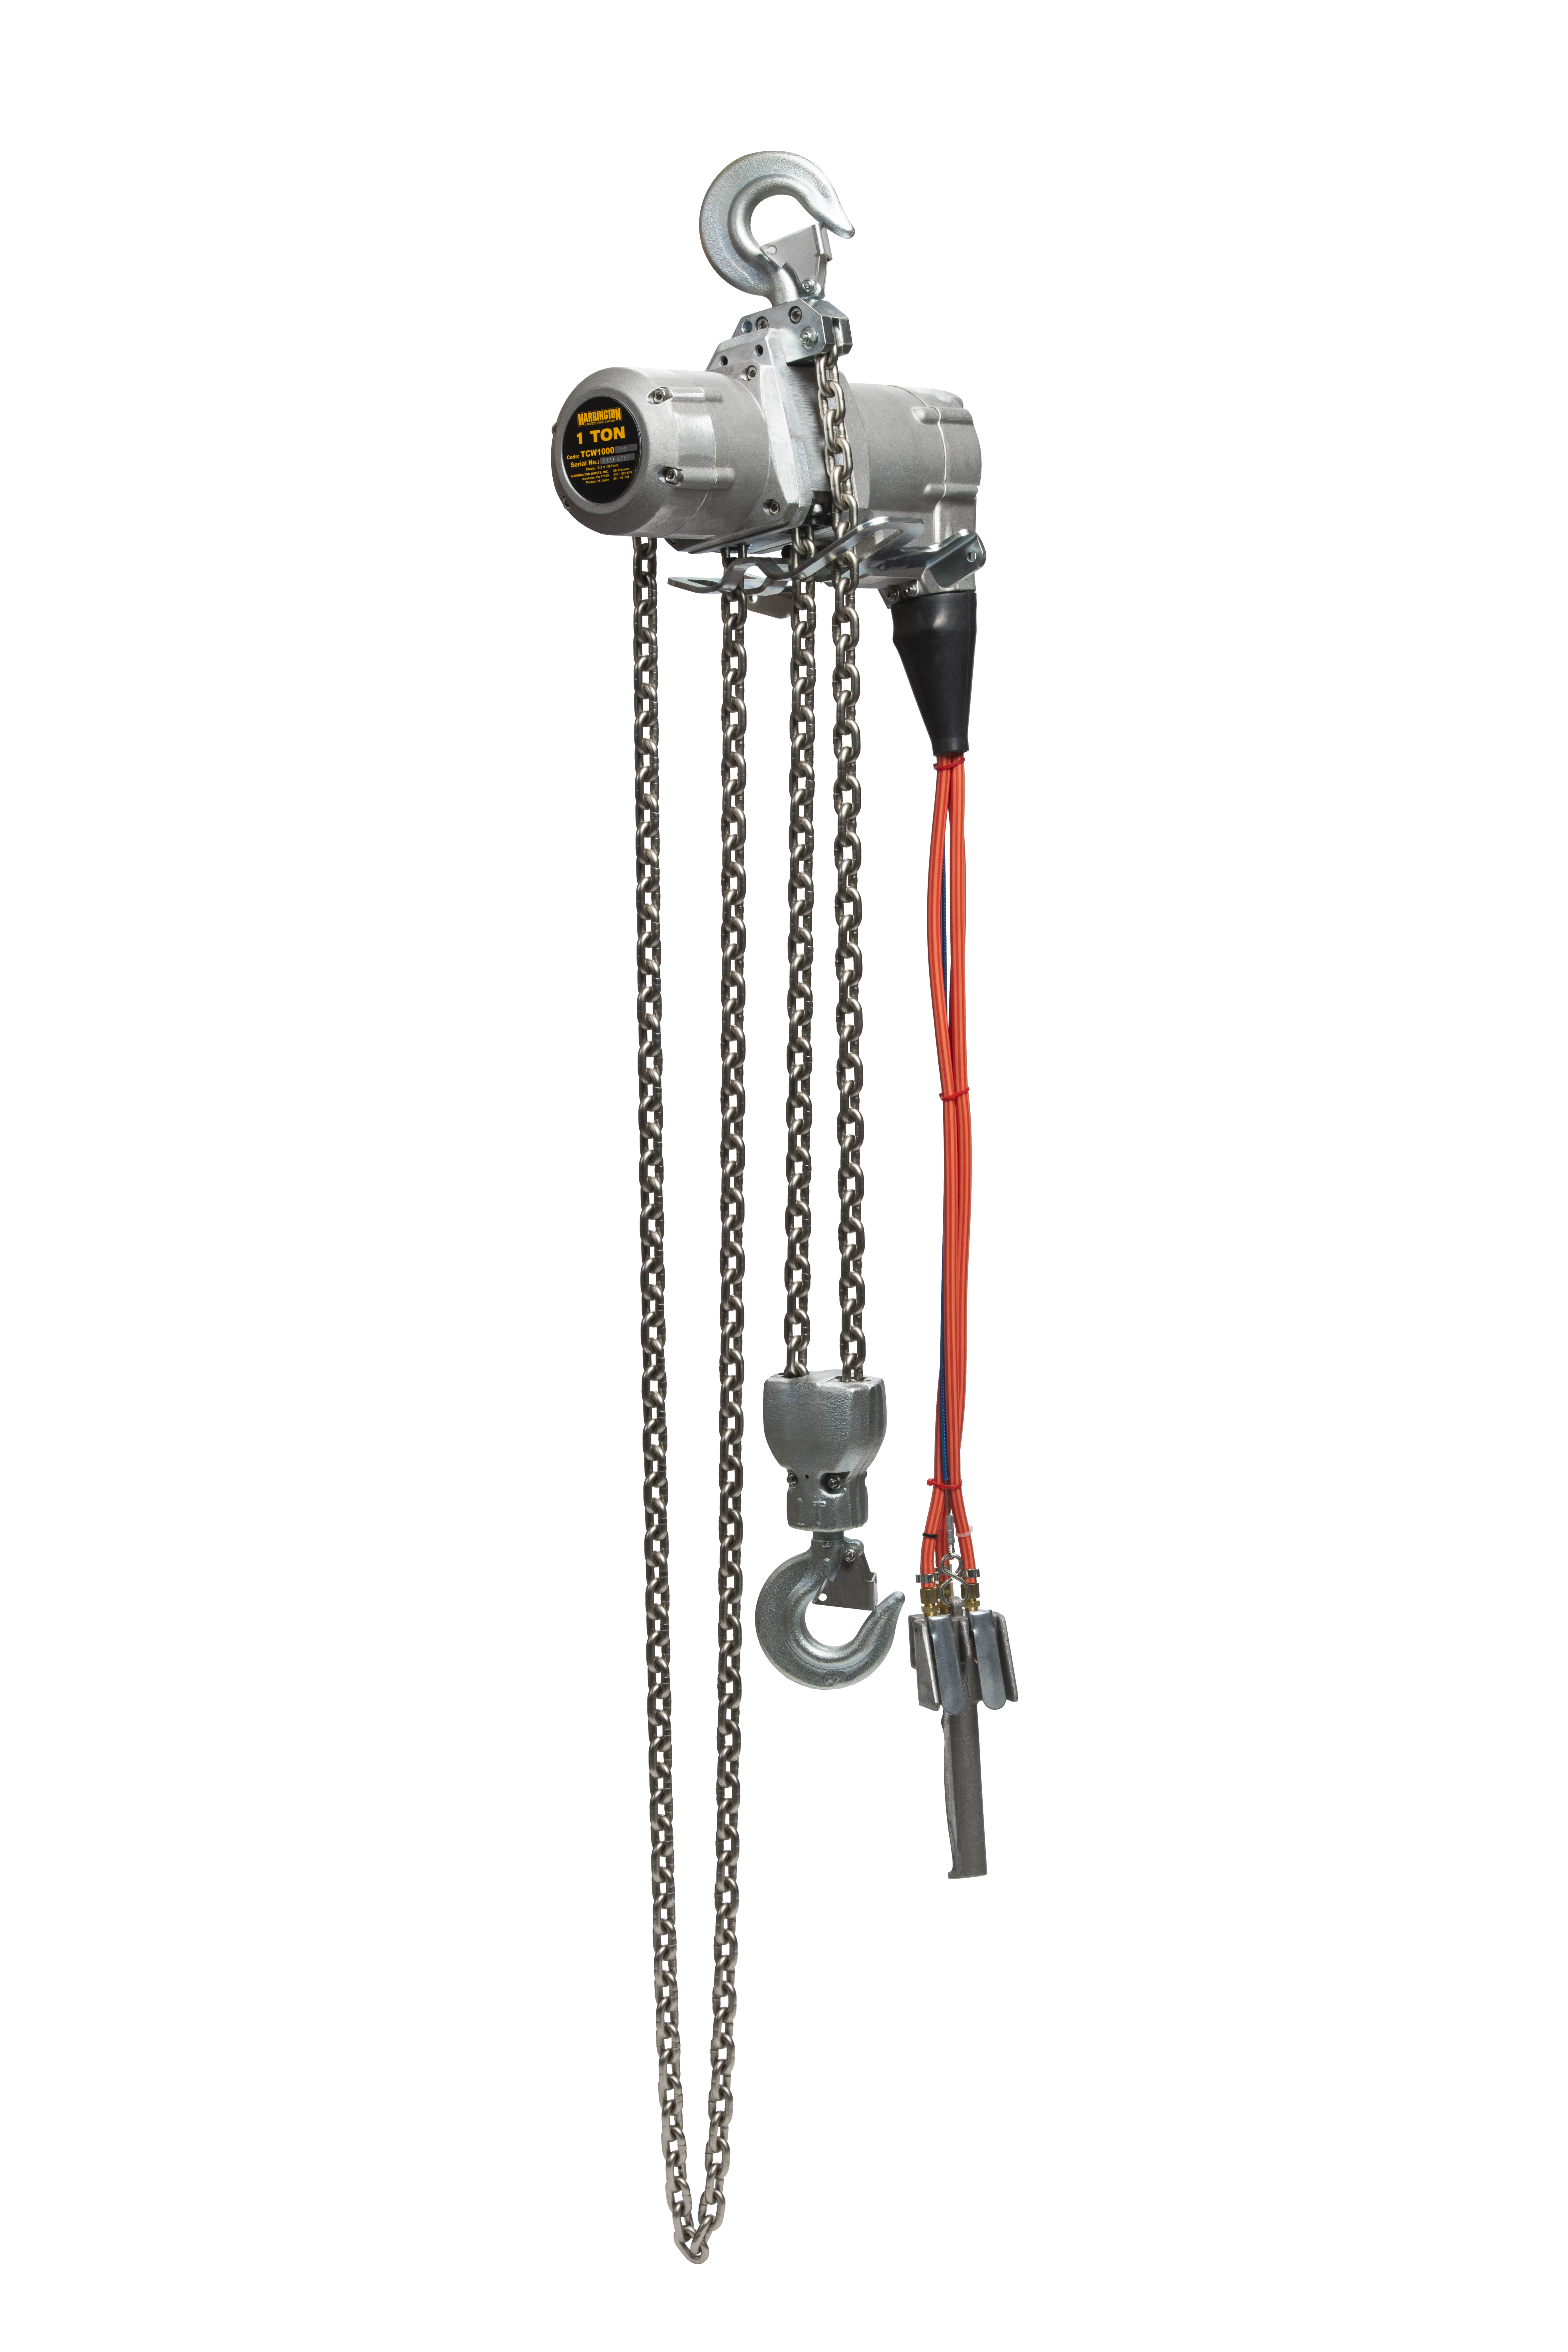 Harrington Hoists TCWP